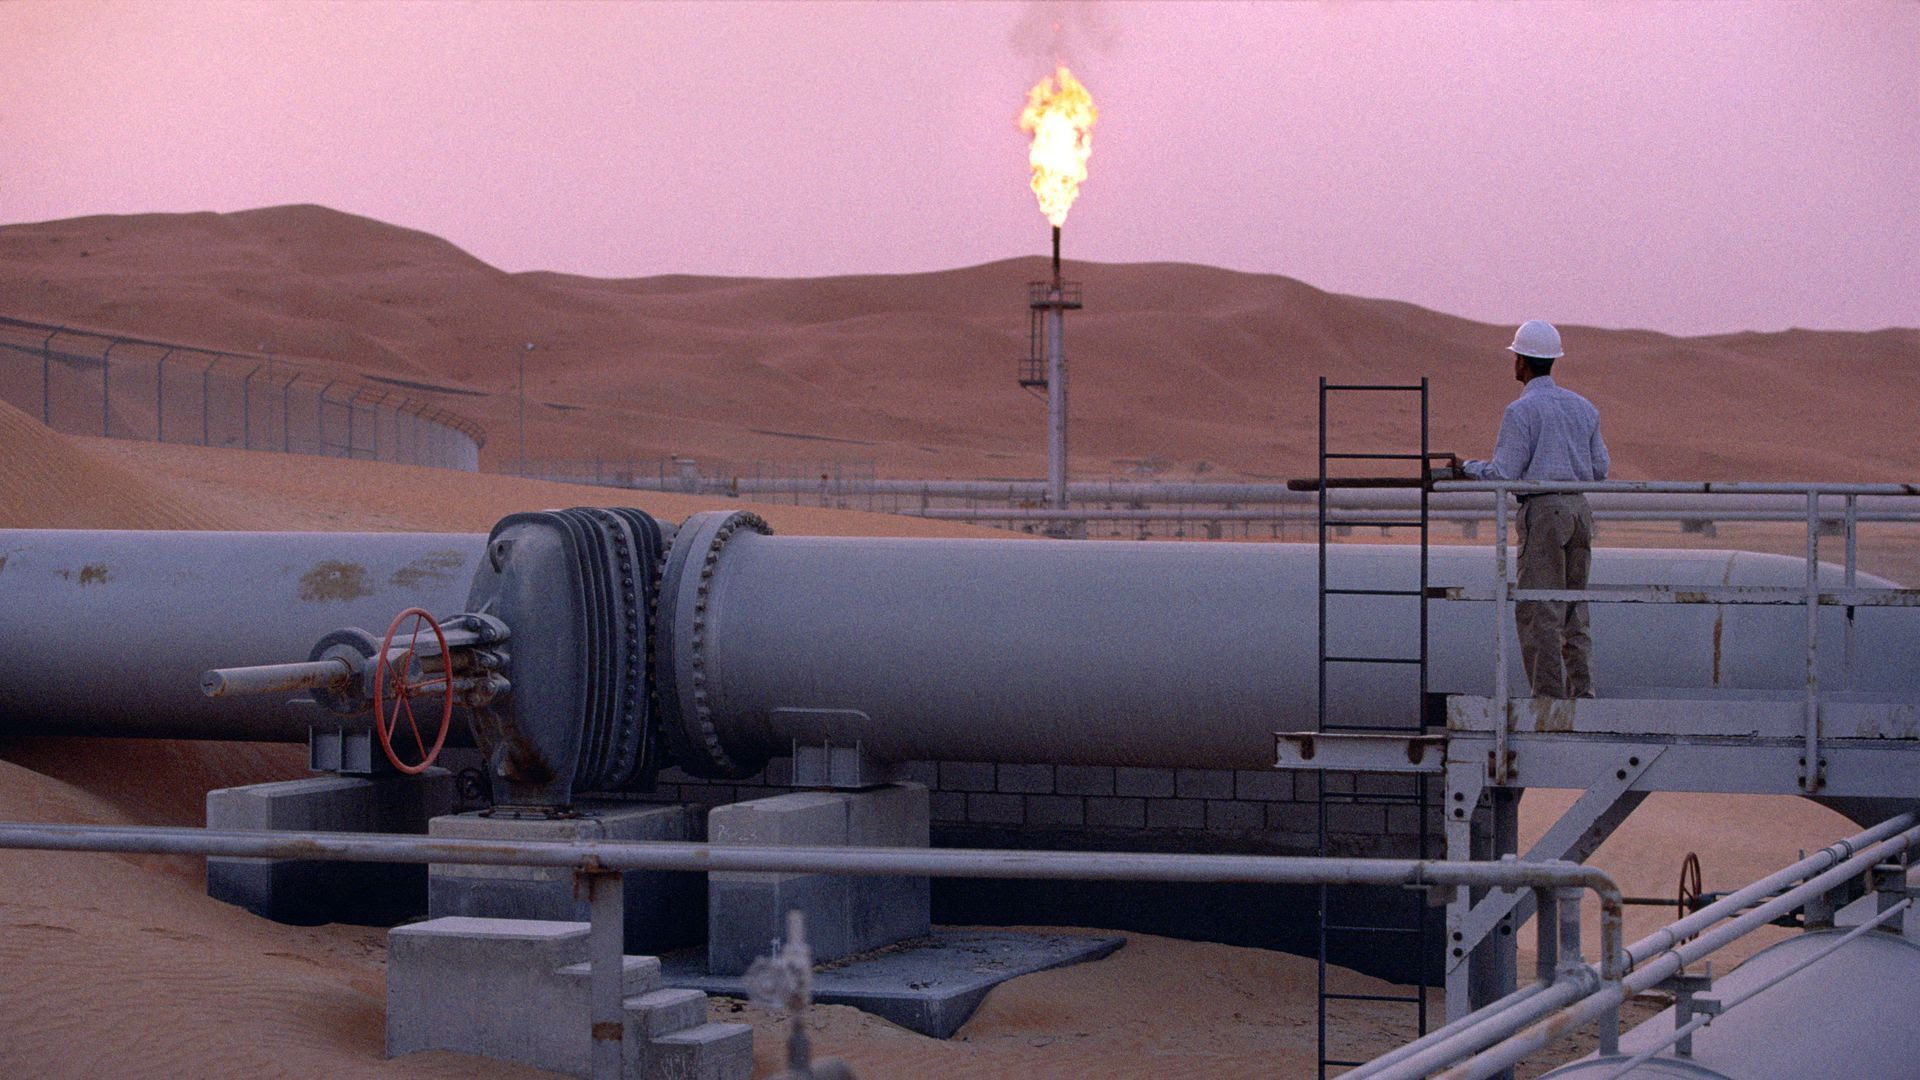 The Saudi Aramco oil field complex facilities at Shaybah in the Rub' al Khali.